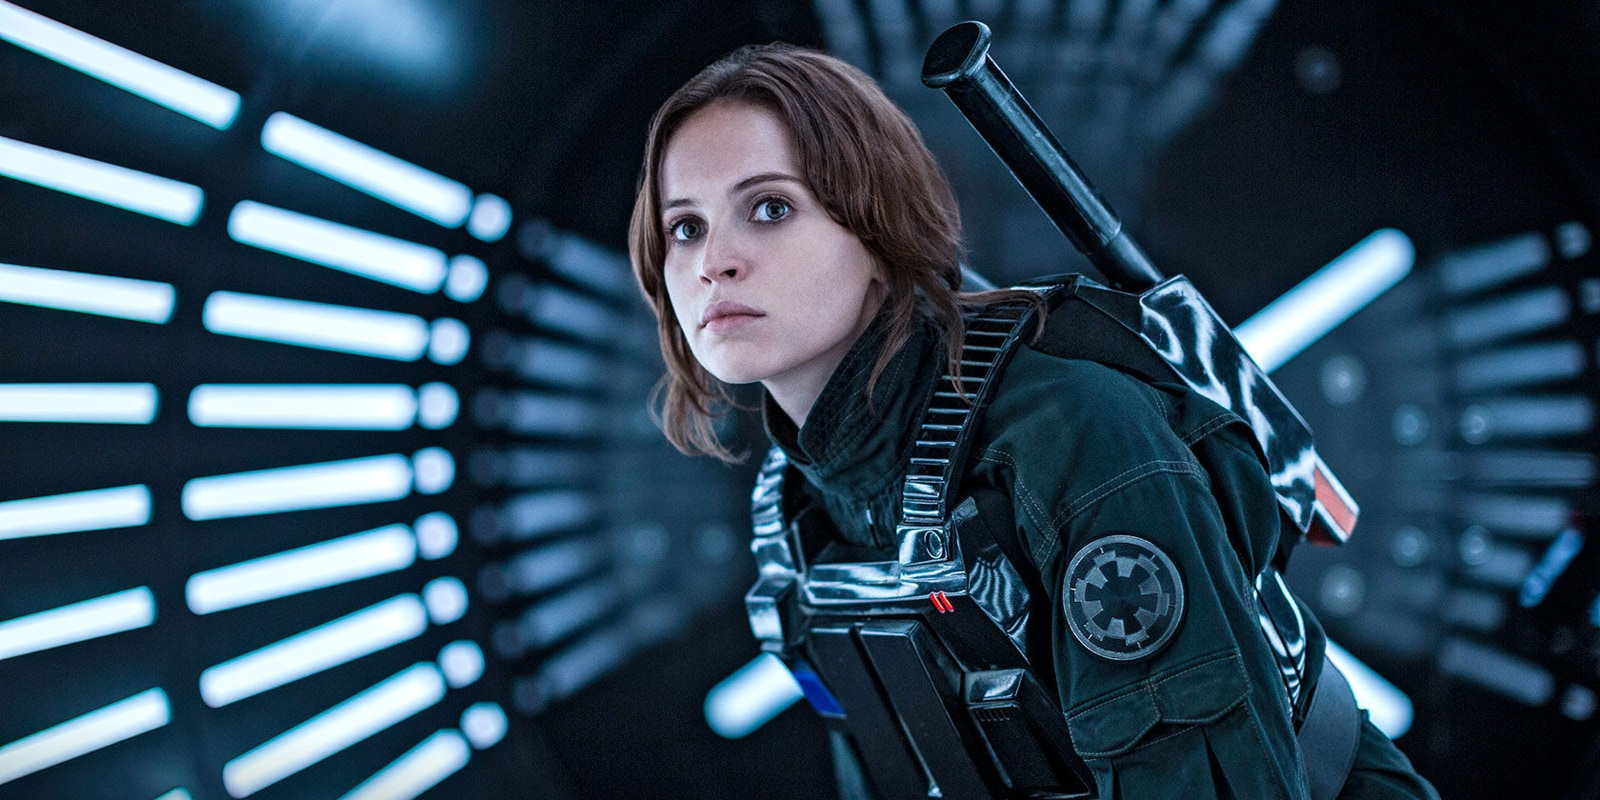 Jyn Erso from Rogue One